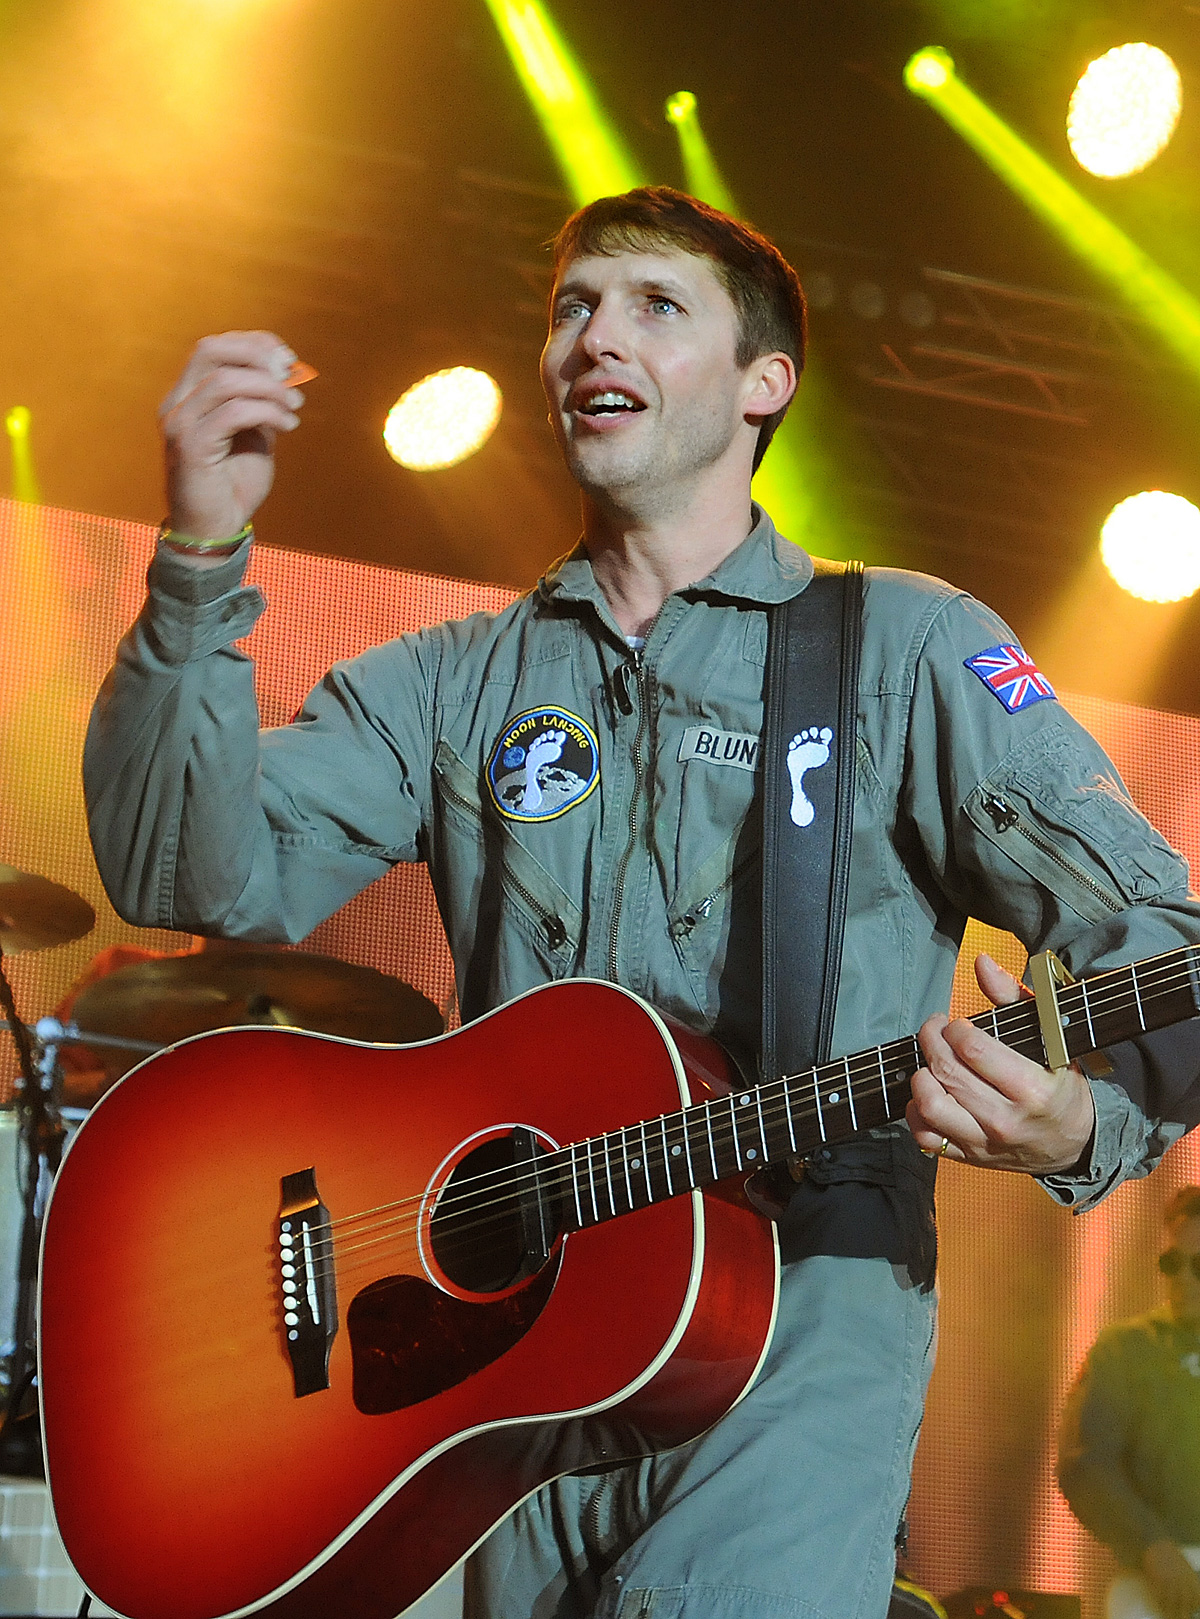 James Blunt kicks off Dalby Forest gigs